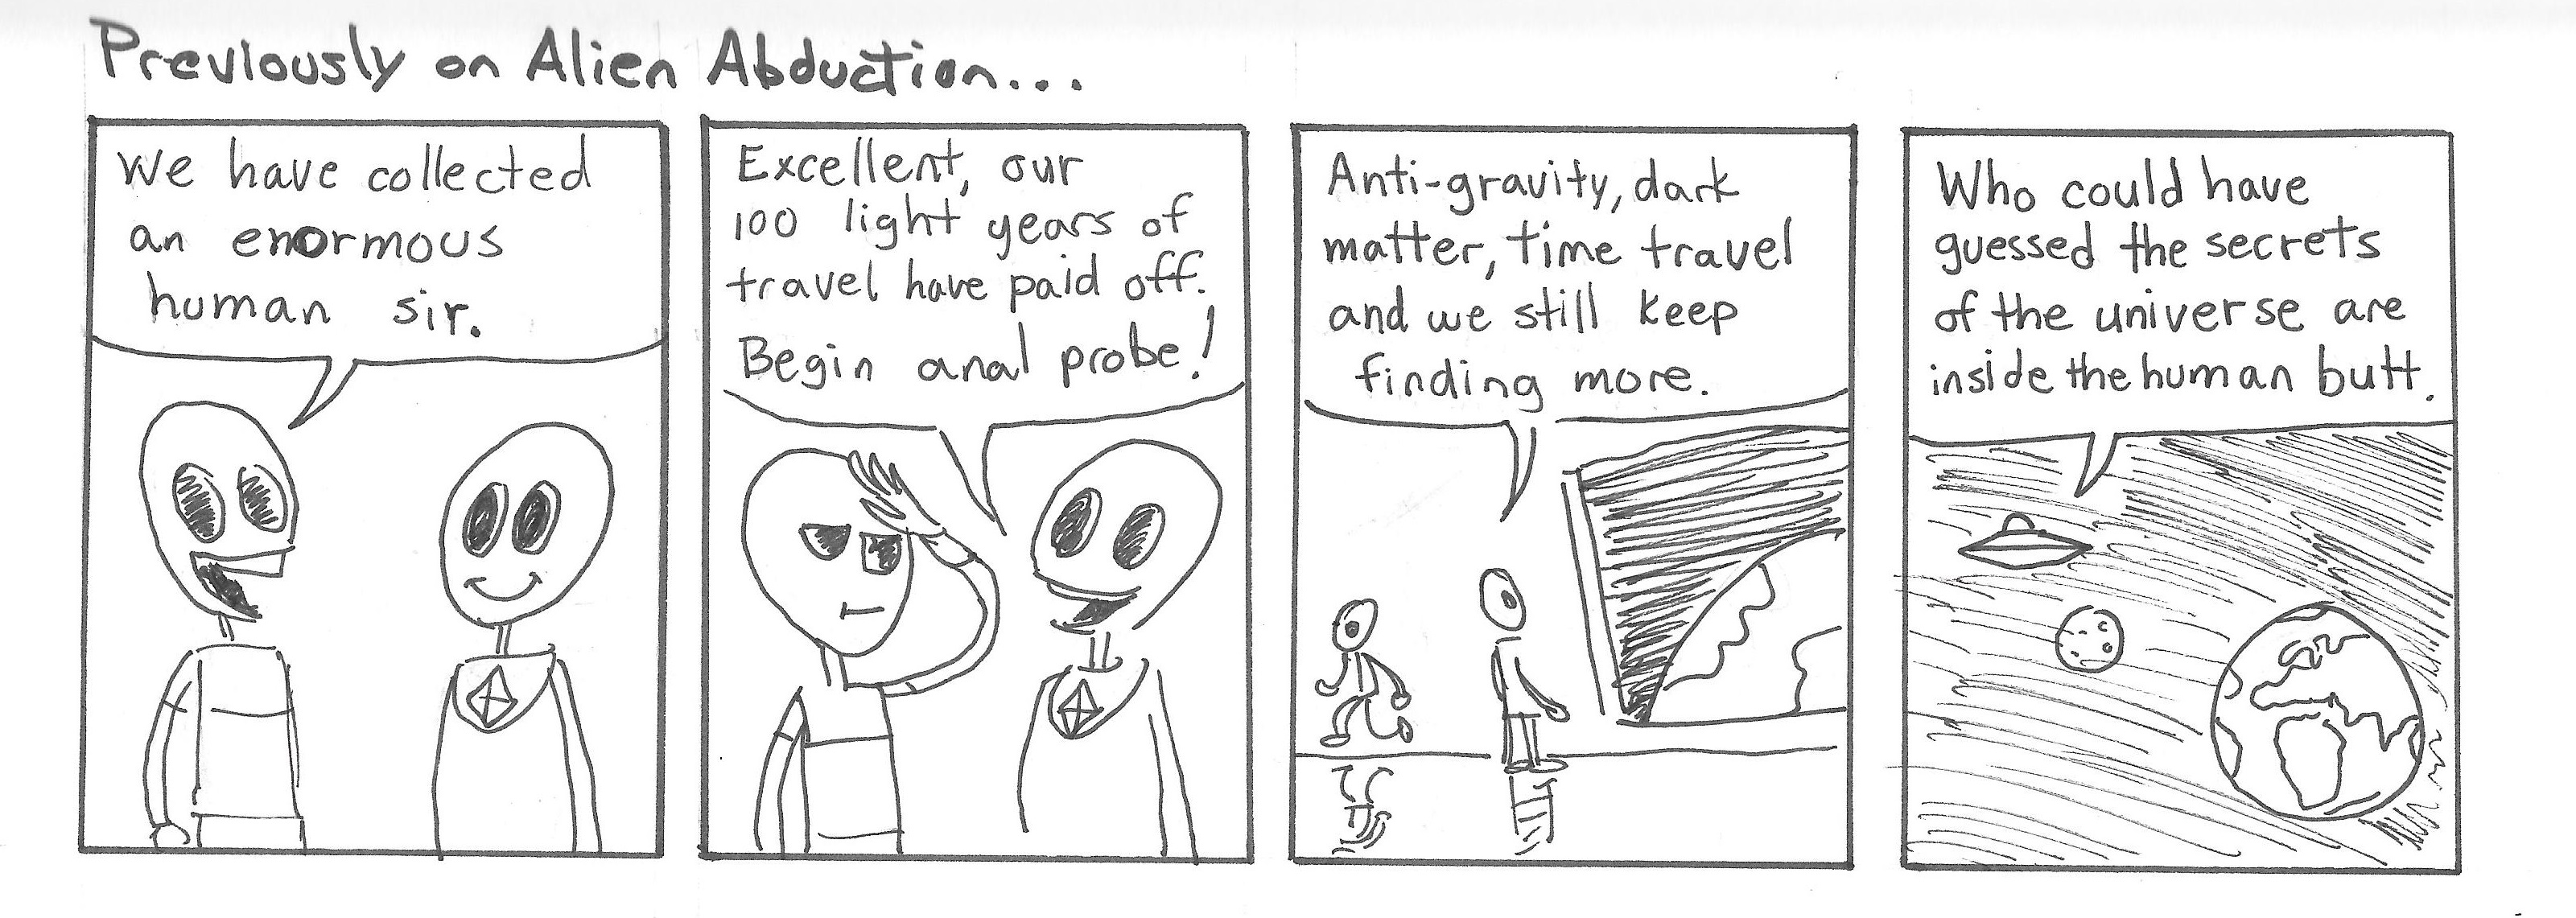 Previously on Alien Abduction...